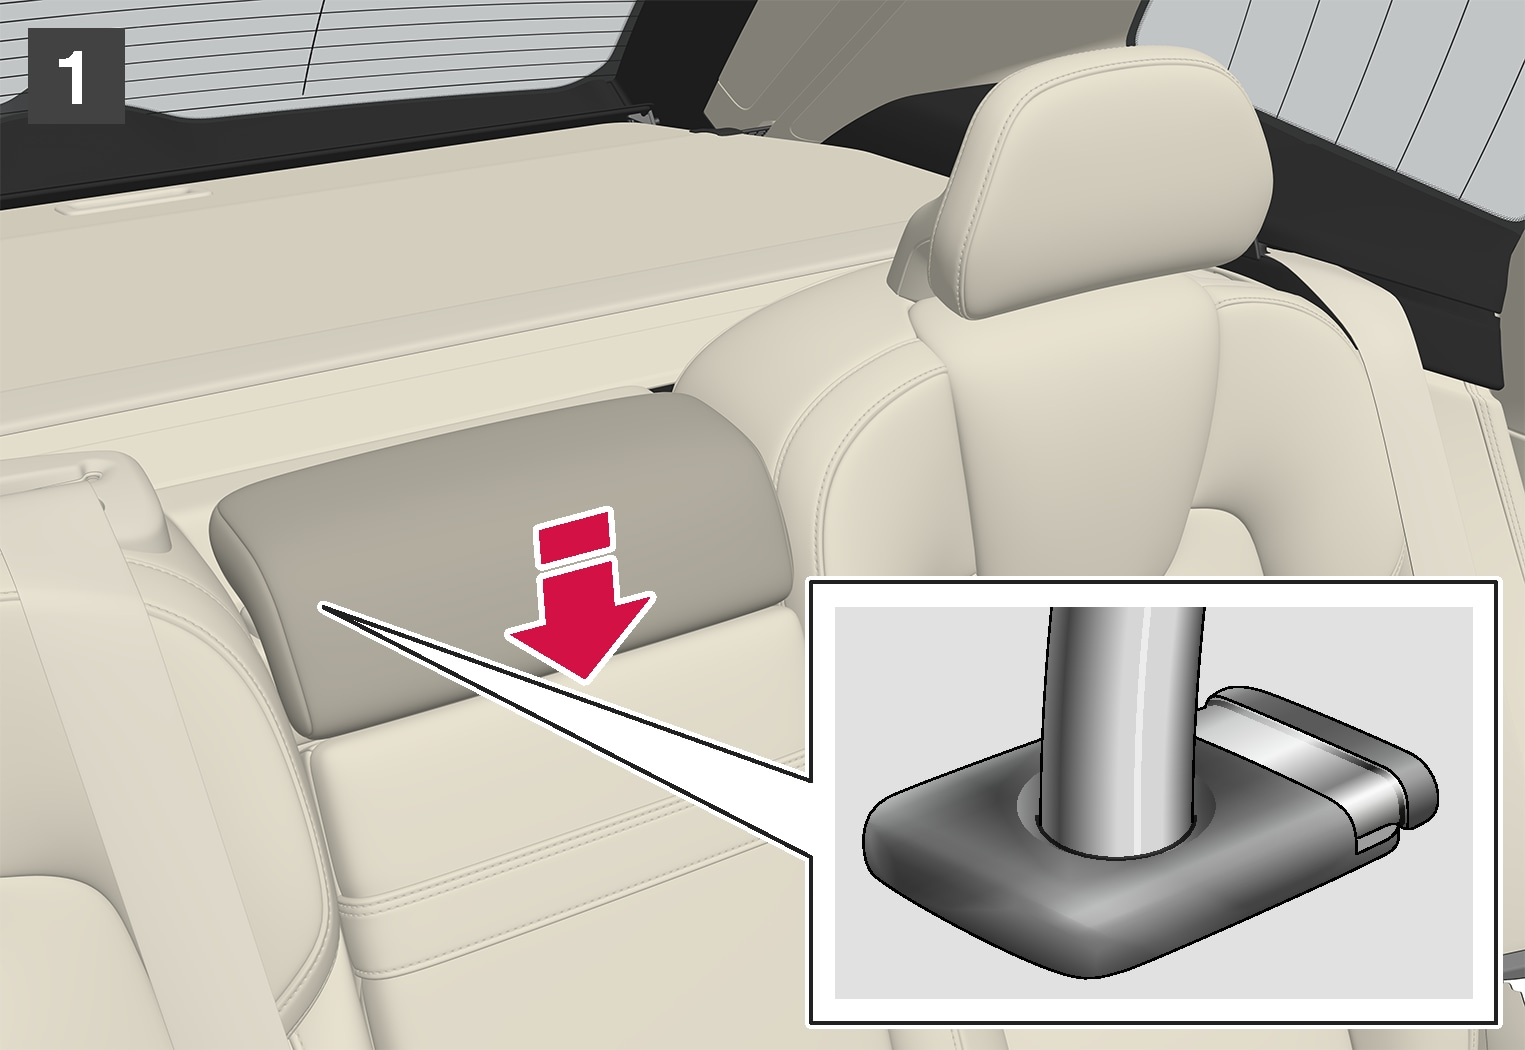 P5-1717-OM-XC60+XC60H-manual folding rear seat_image1of2